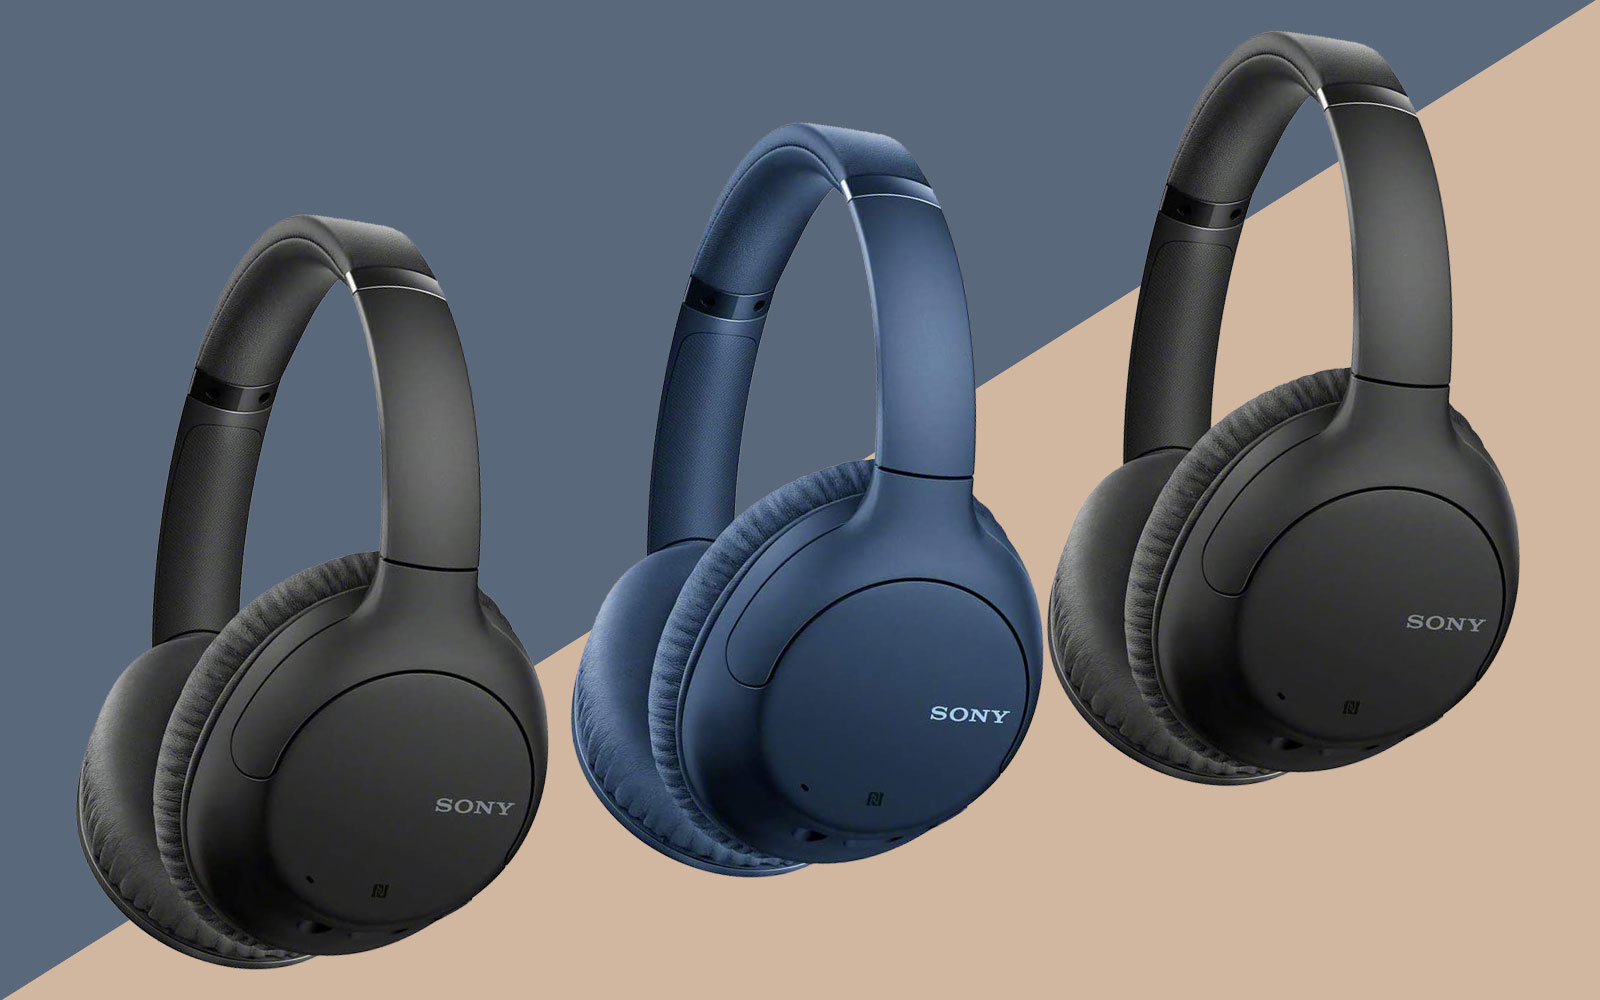 sony noise cancelling headphones bluetooth blue black